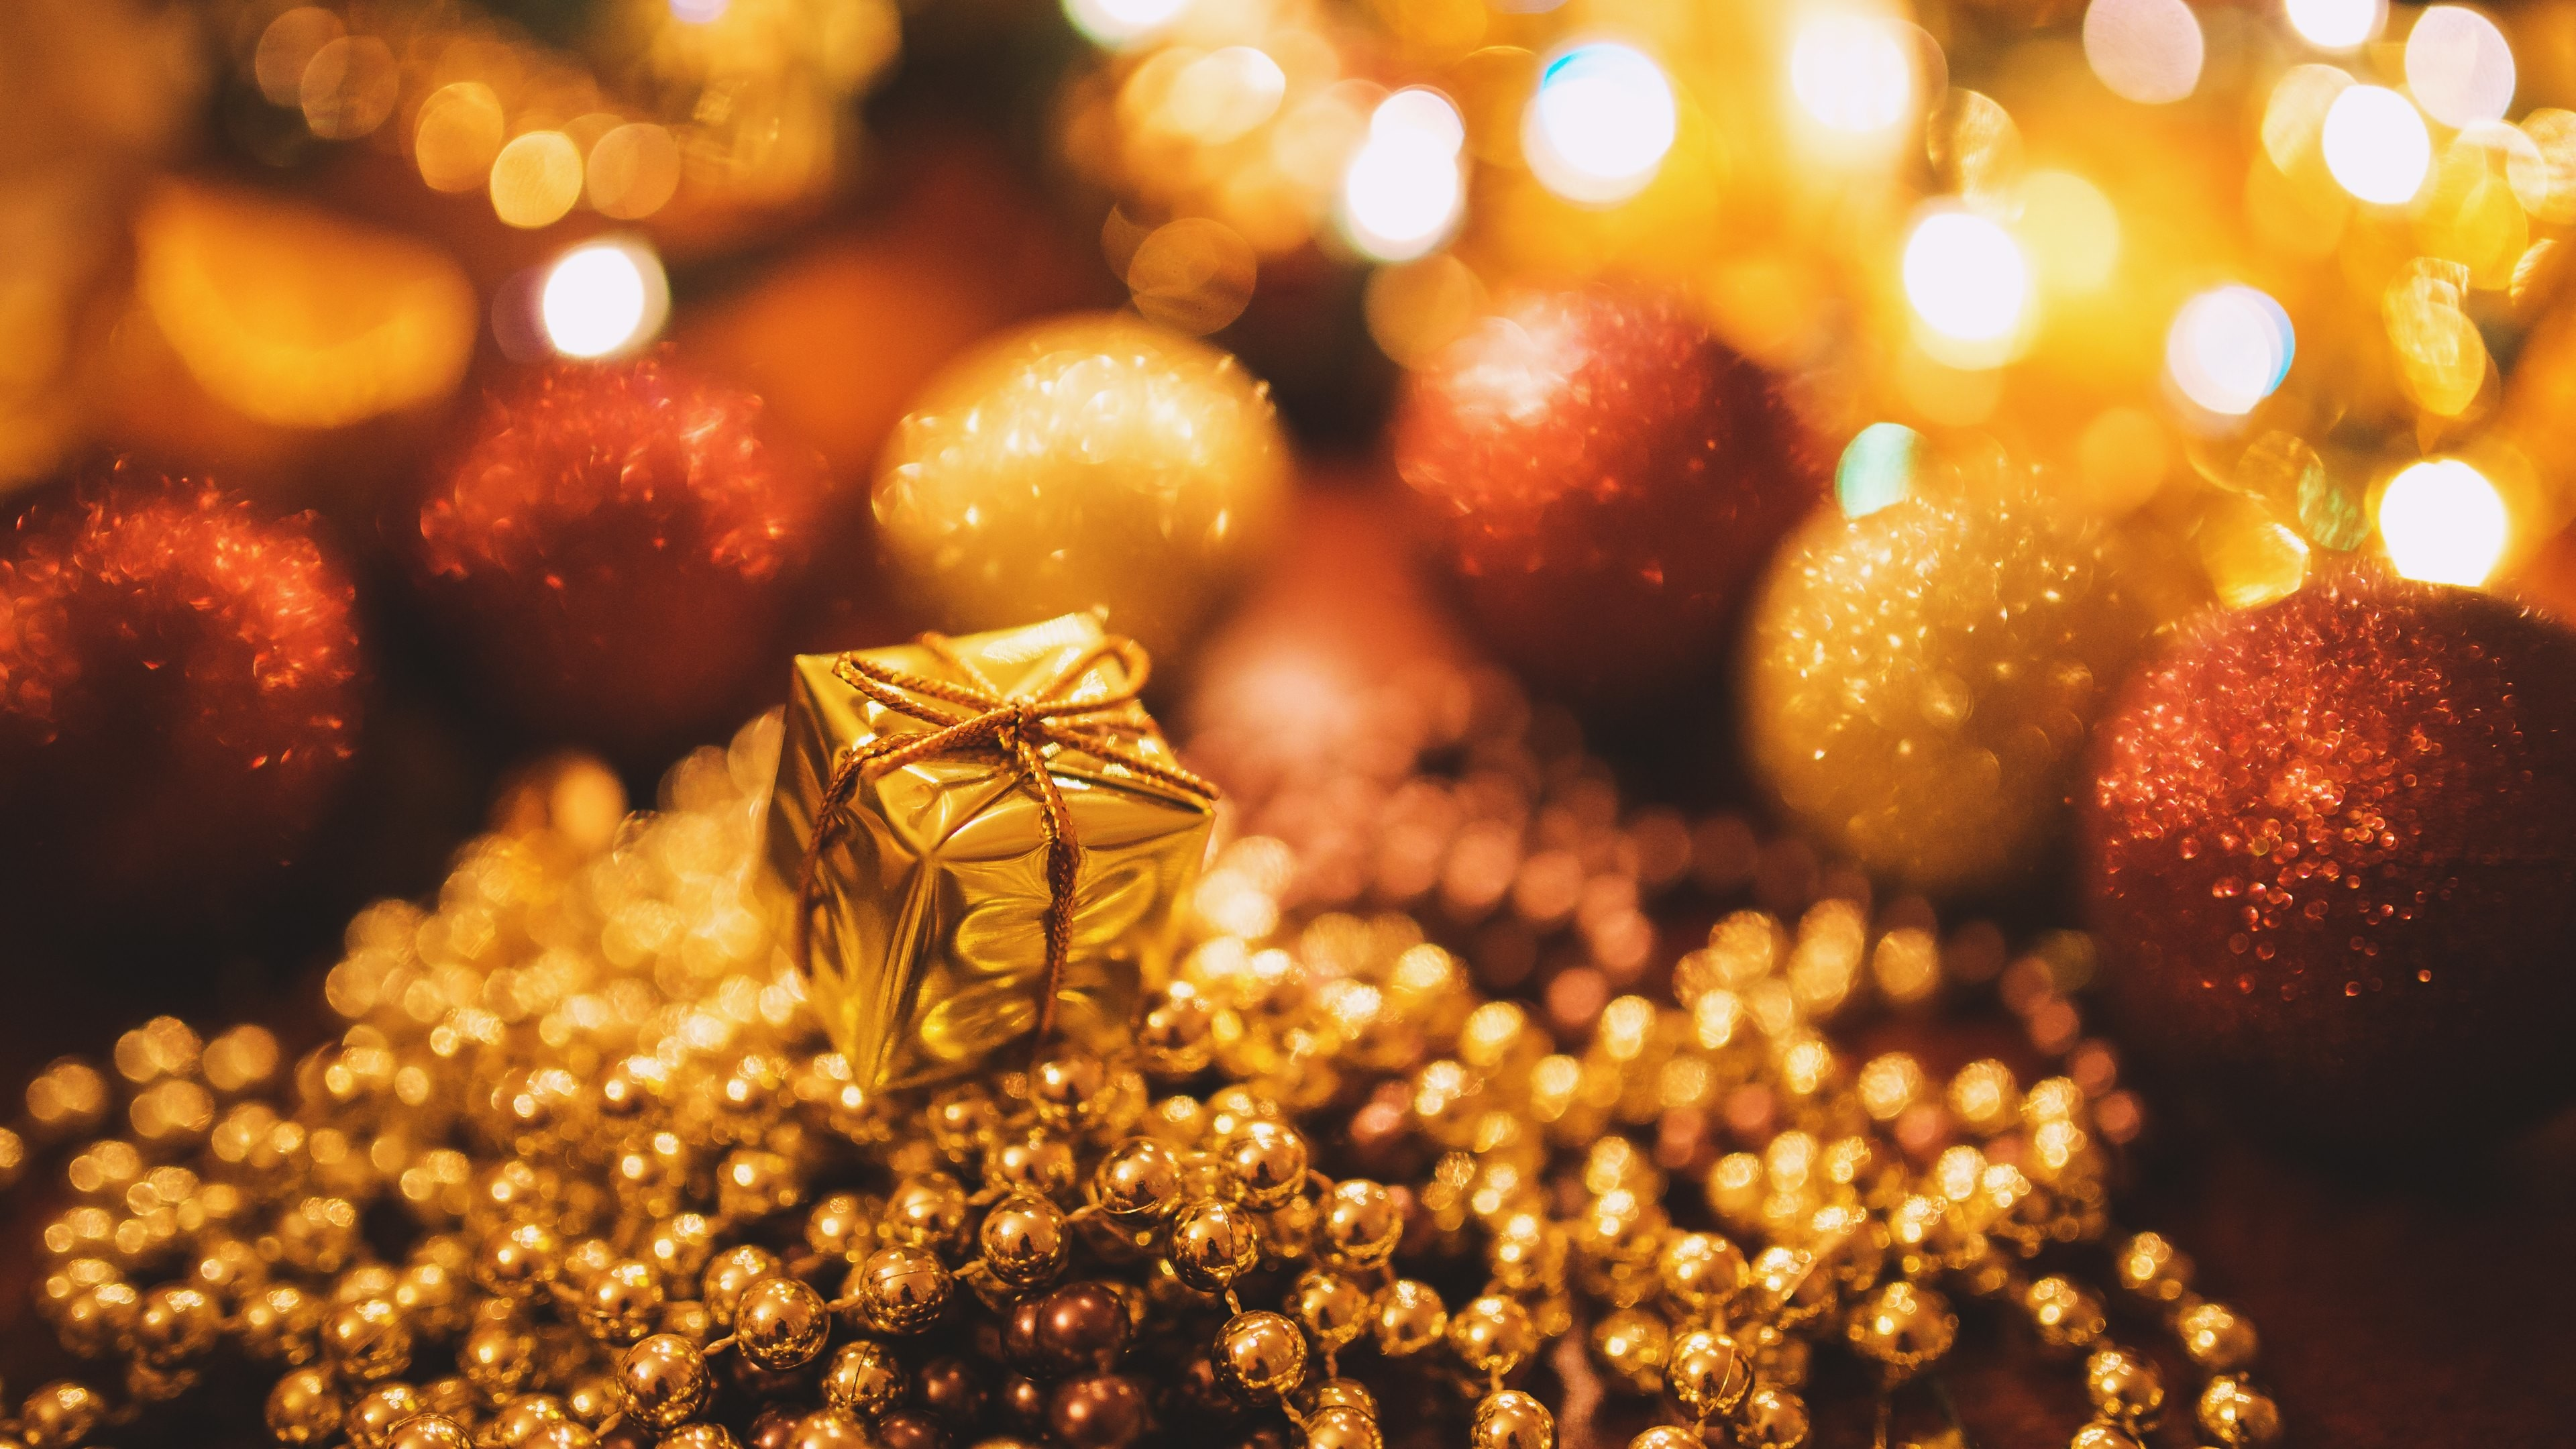 Res: 3840x2160, Gold Christmas Gift